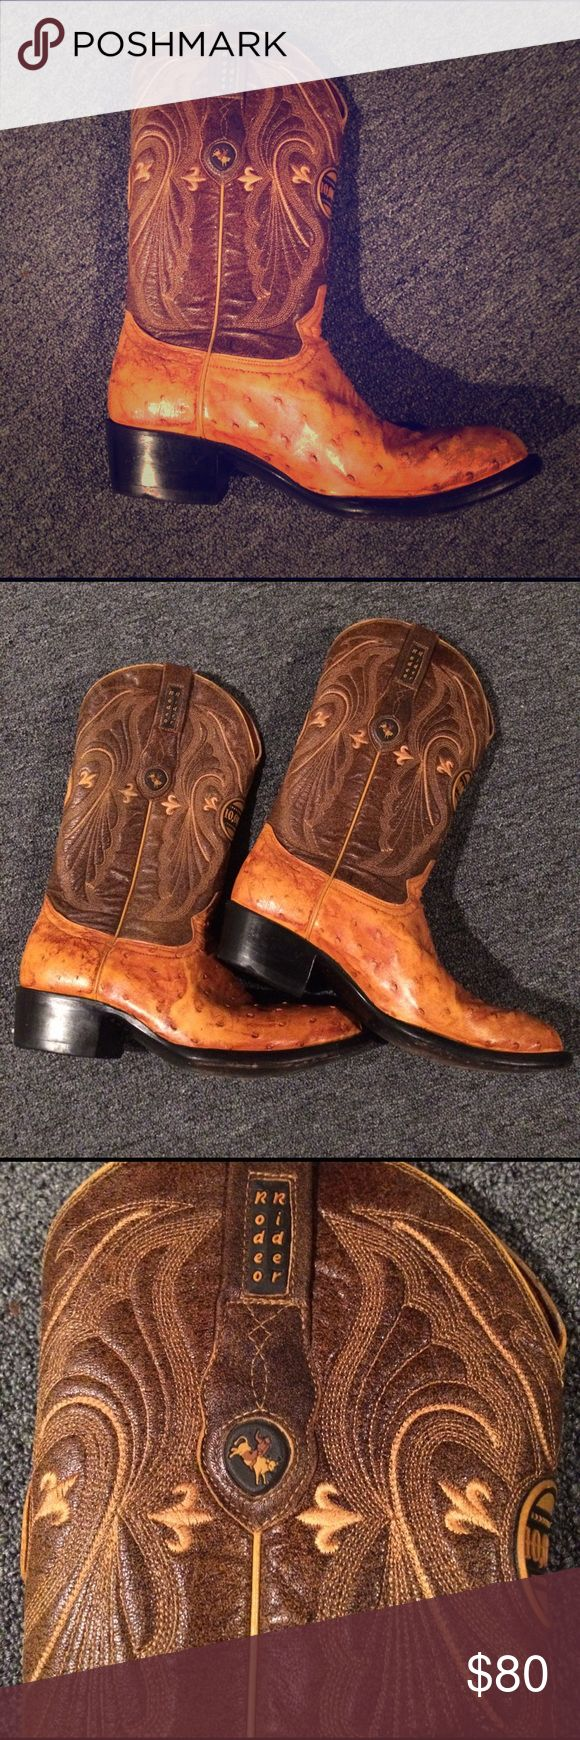 Western boots Men's Rodeo Rider Elegant leather boots with beautiful sewn pattern. Used Lots of wear left!! Great condition!! Brown light brown almost orange color. Rodeo Rider Shoes Cowboy & Western Boots